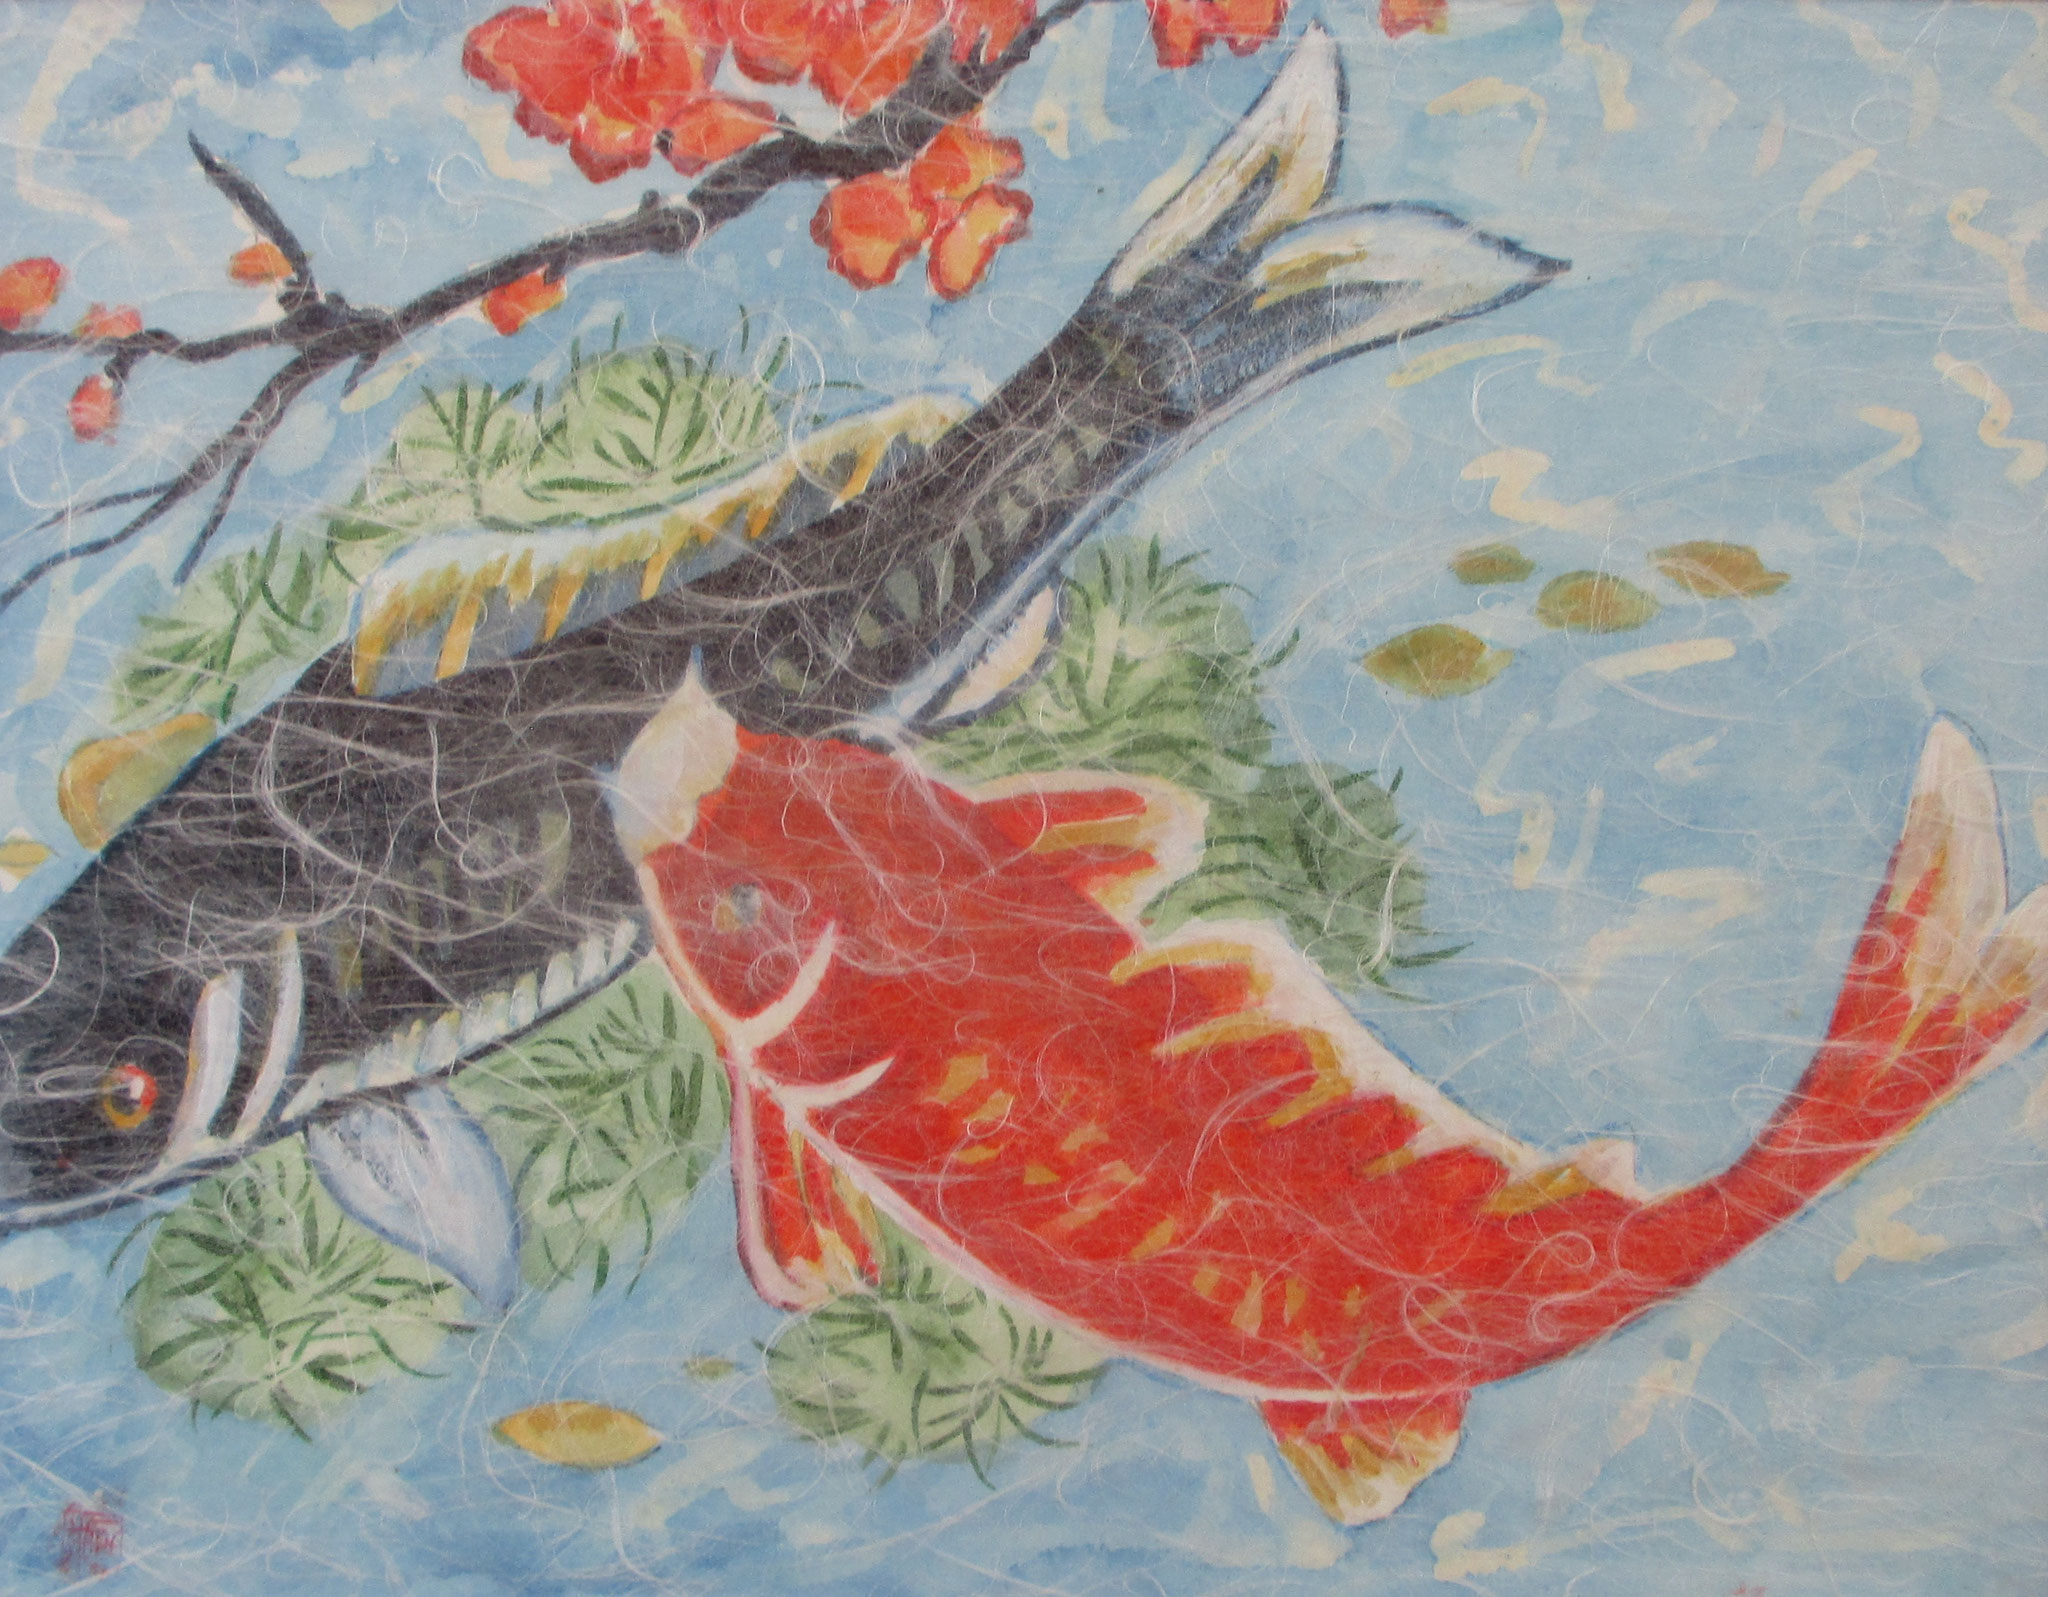 Koi, watercolor, Washi paper overlay, 20 x 16, matted